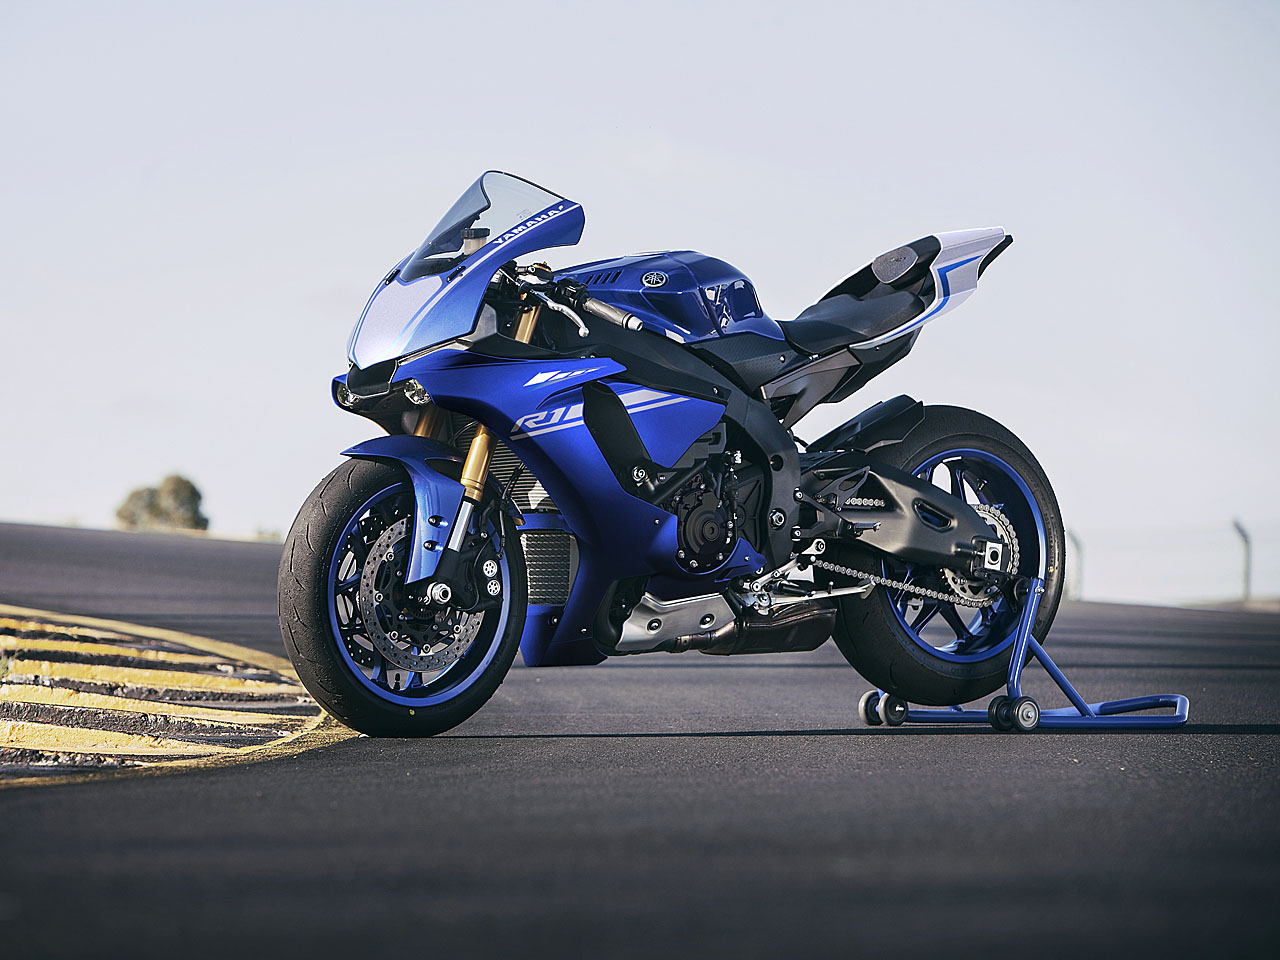 2019 Yamaha Yzf R1 Get That Bike Loan